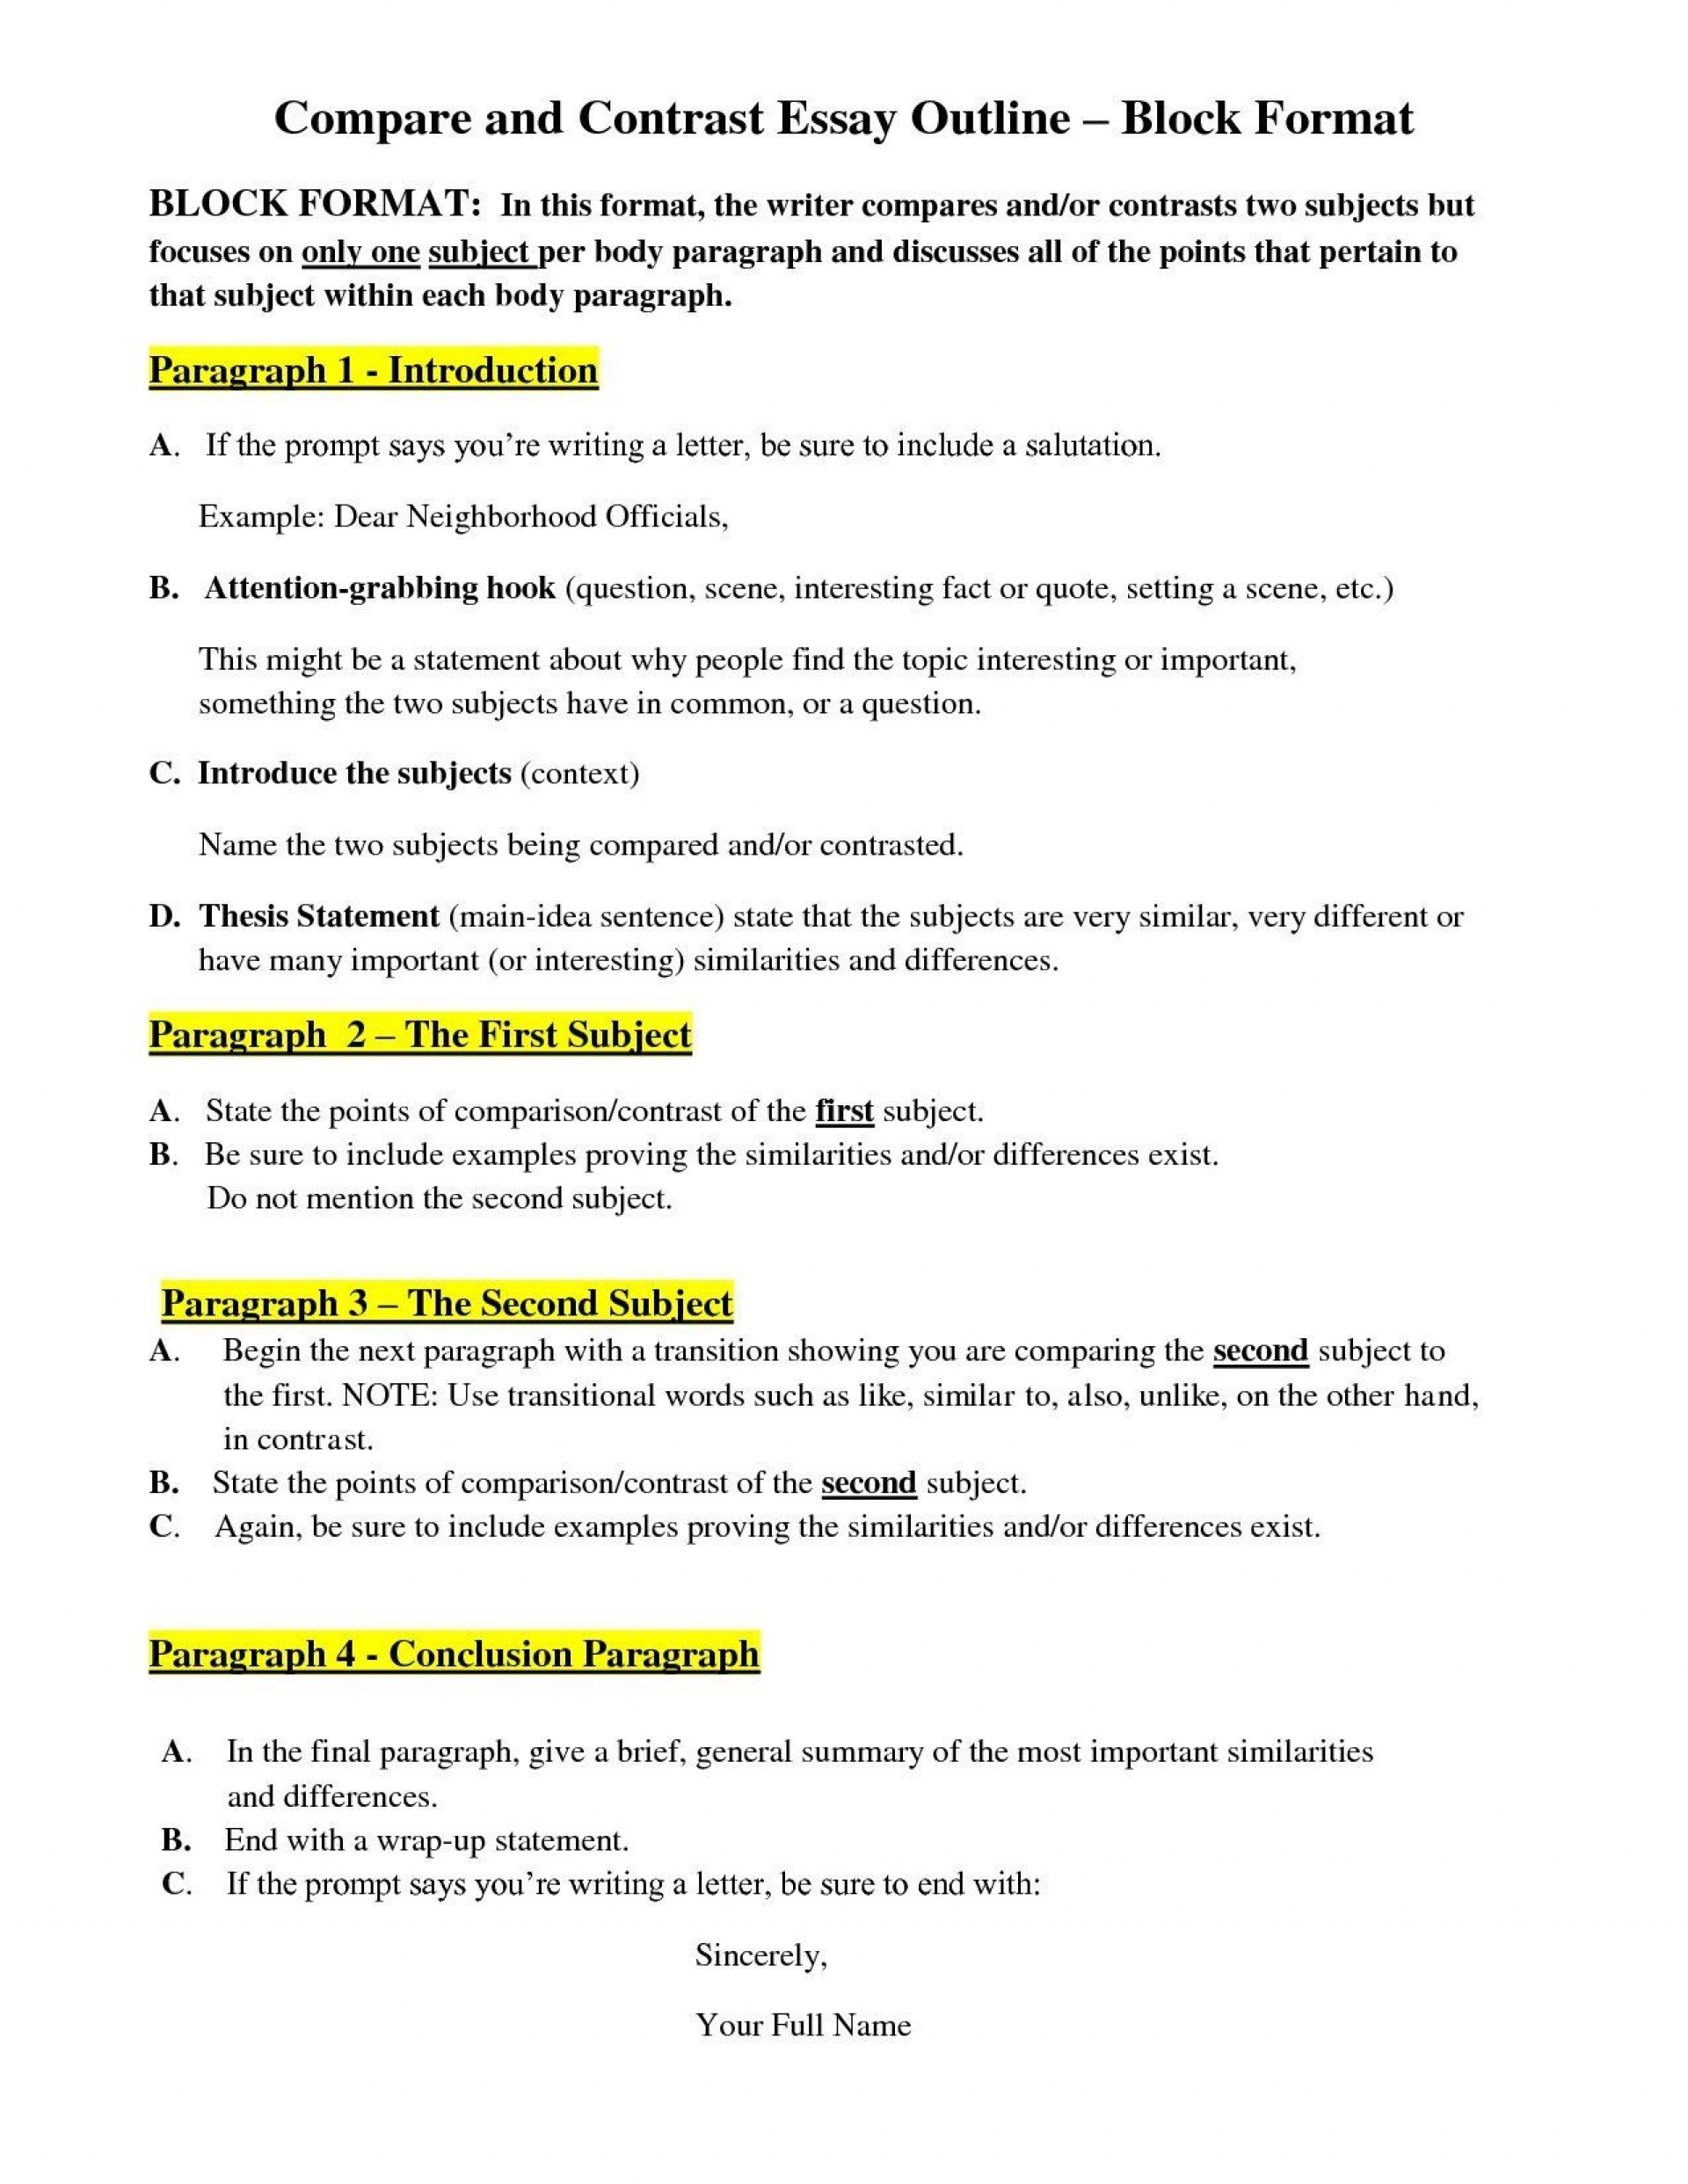 007 Compare And Contrast Essay Frightening Topics Outline Doc Sample 4th Grade 1920